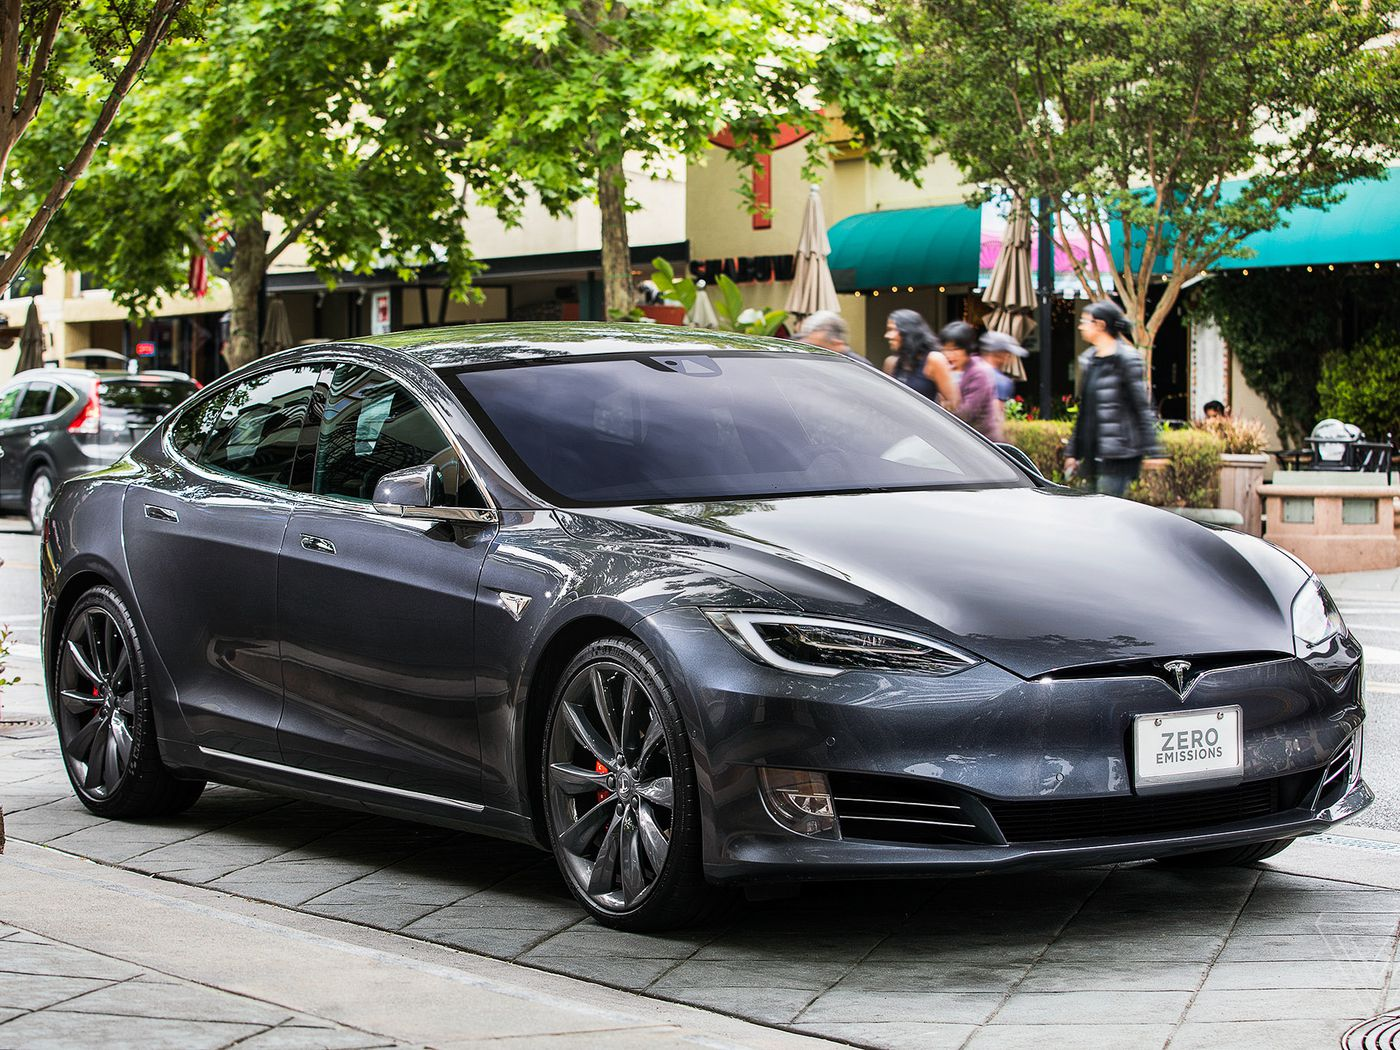 Tesla S Model S Is The First Electric Car With 400 Mile Range Epa Rating The Verge